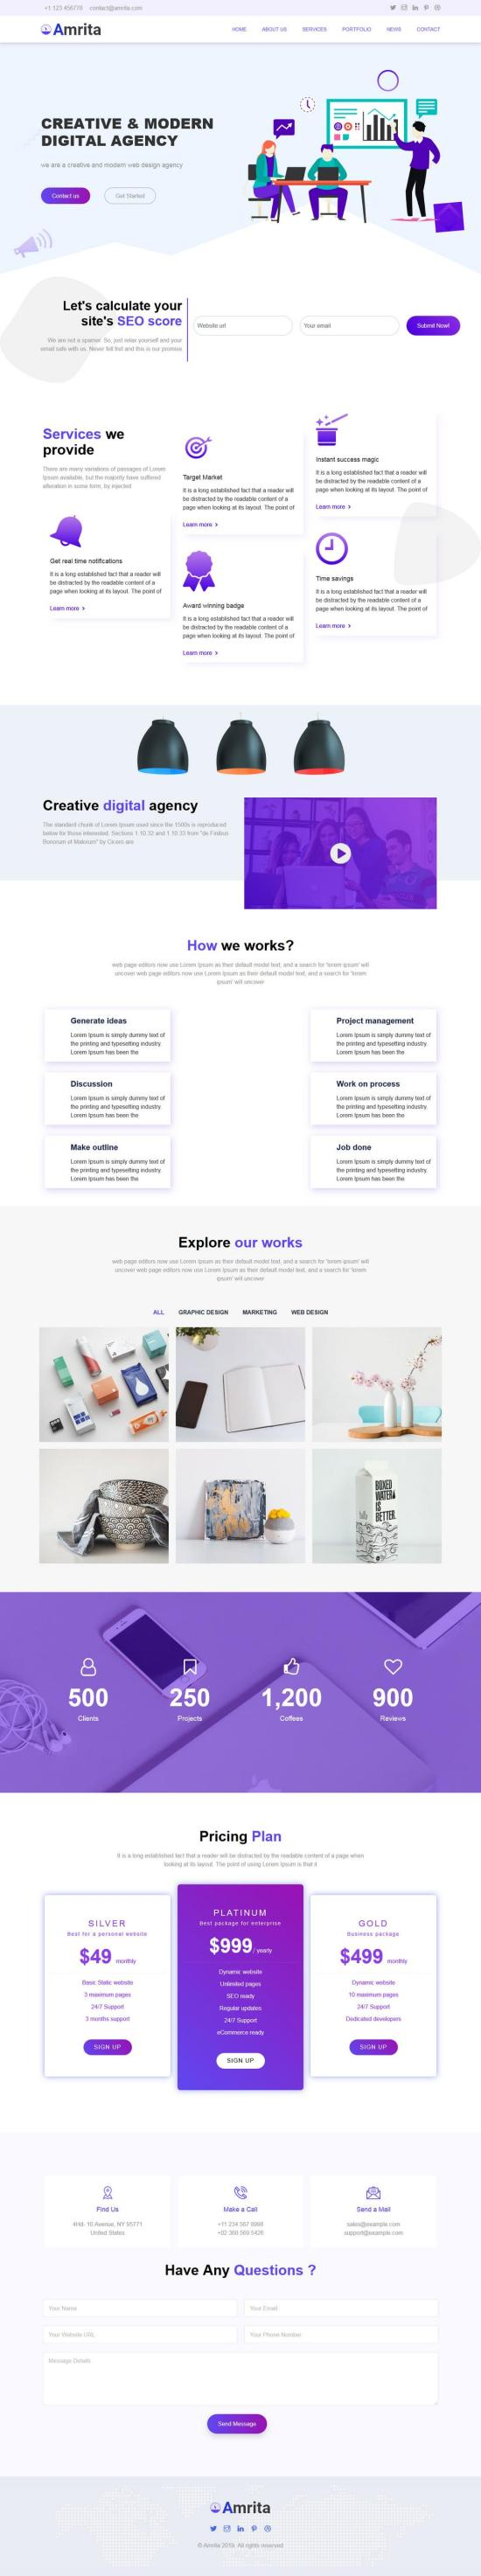 amrita wordpress theme 01 - Amrita WordPress Theme